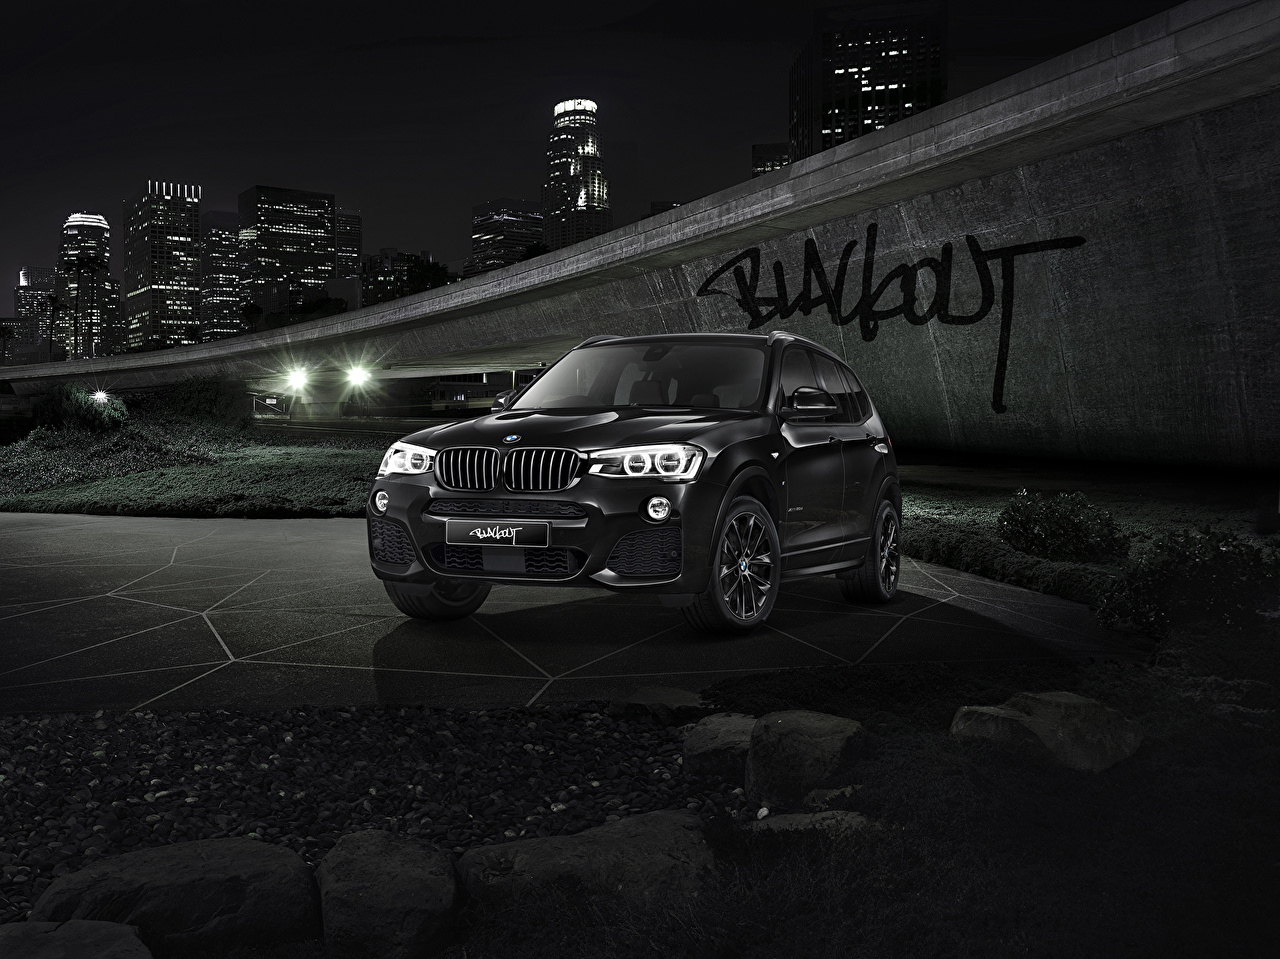 Photos BMW X3 F25 Black Cars night time auto Night automobile